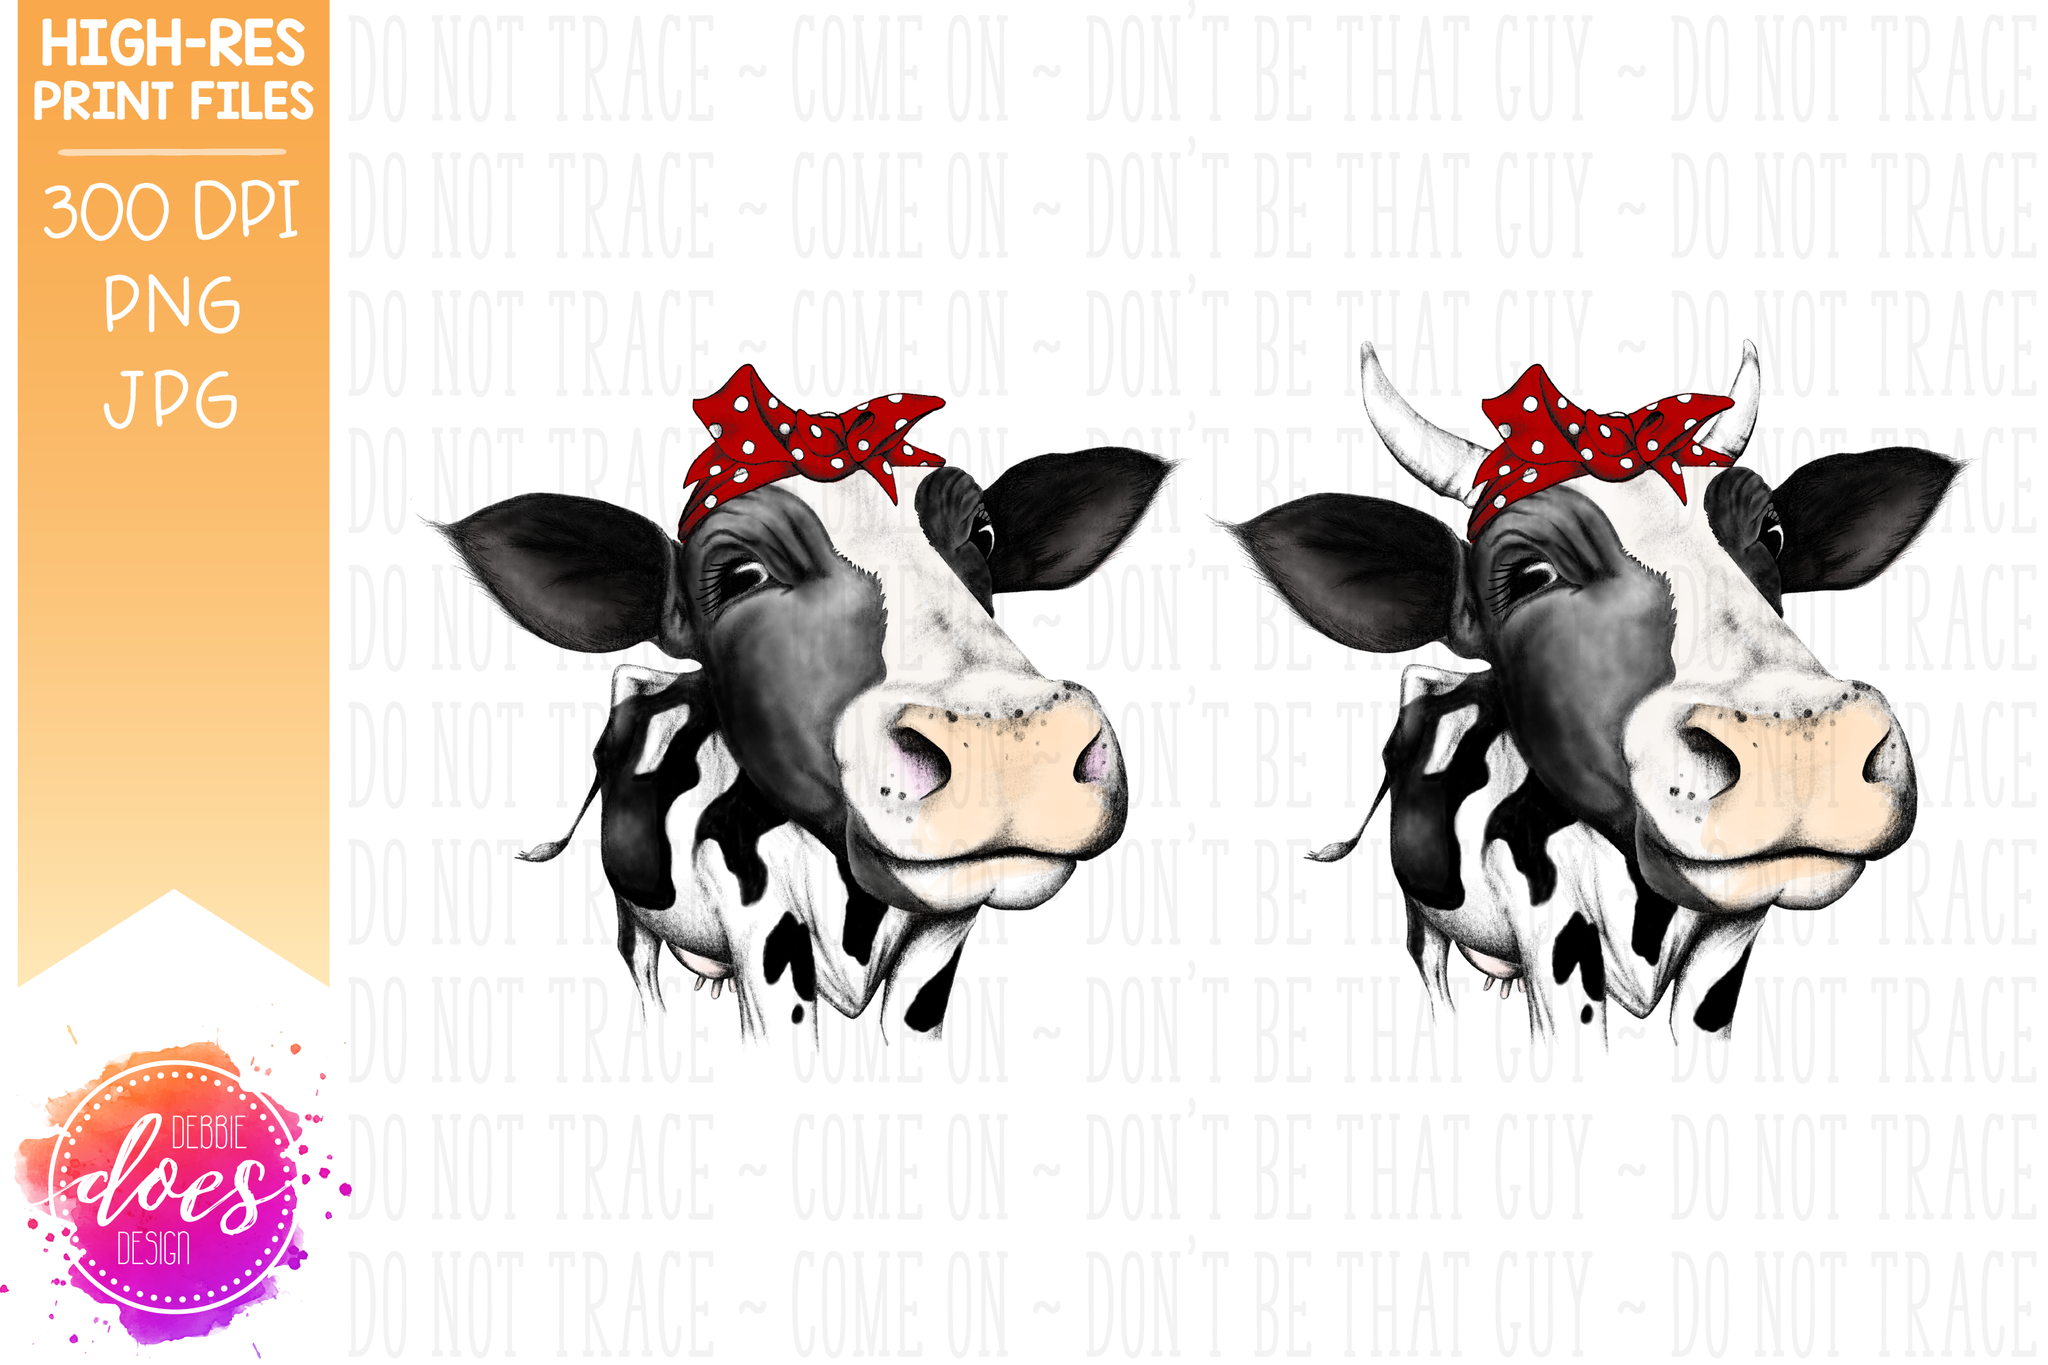 Hand Drawn Dairy Cow with Bandana Print - Printable/Sublimation File